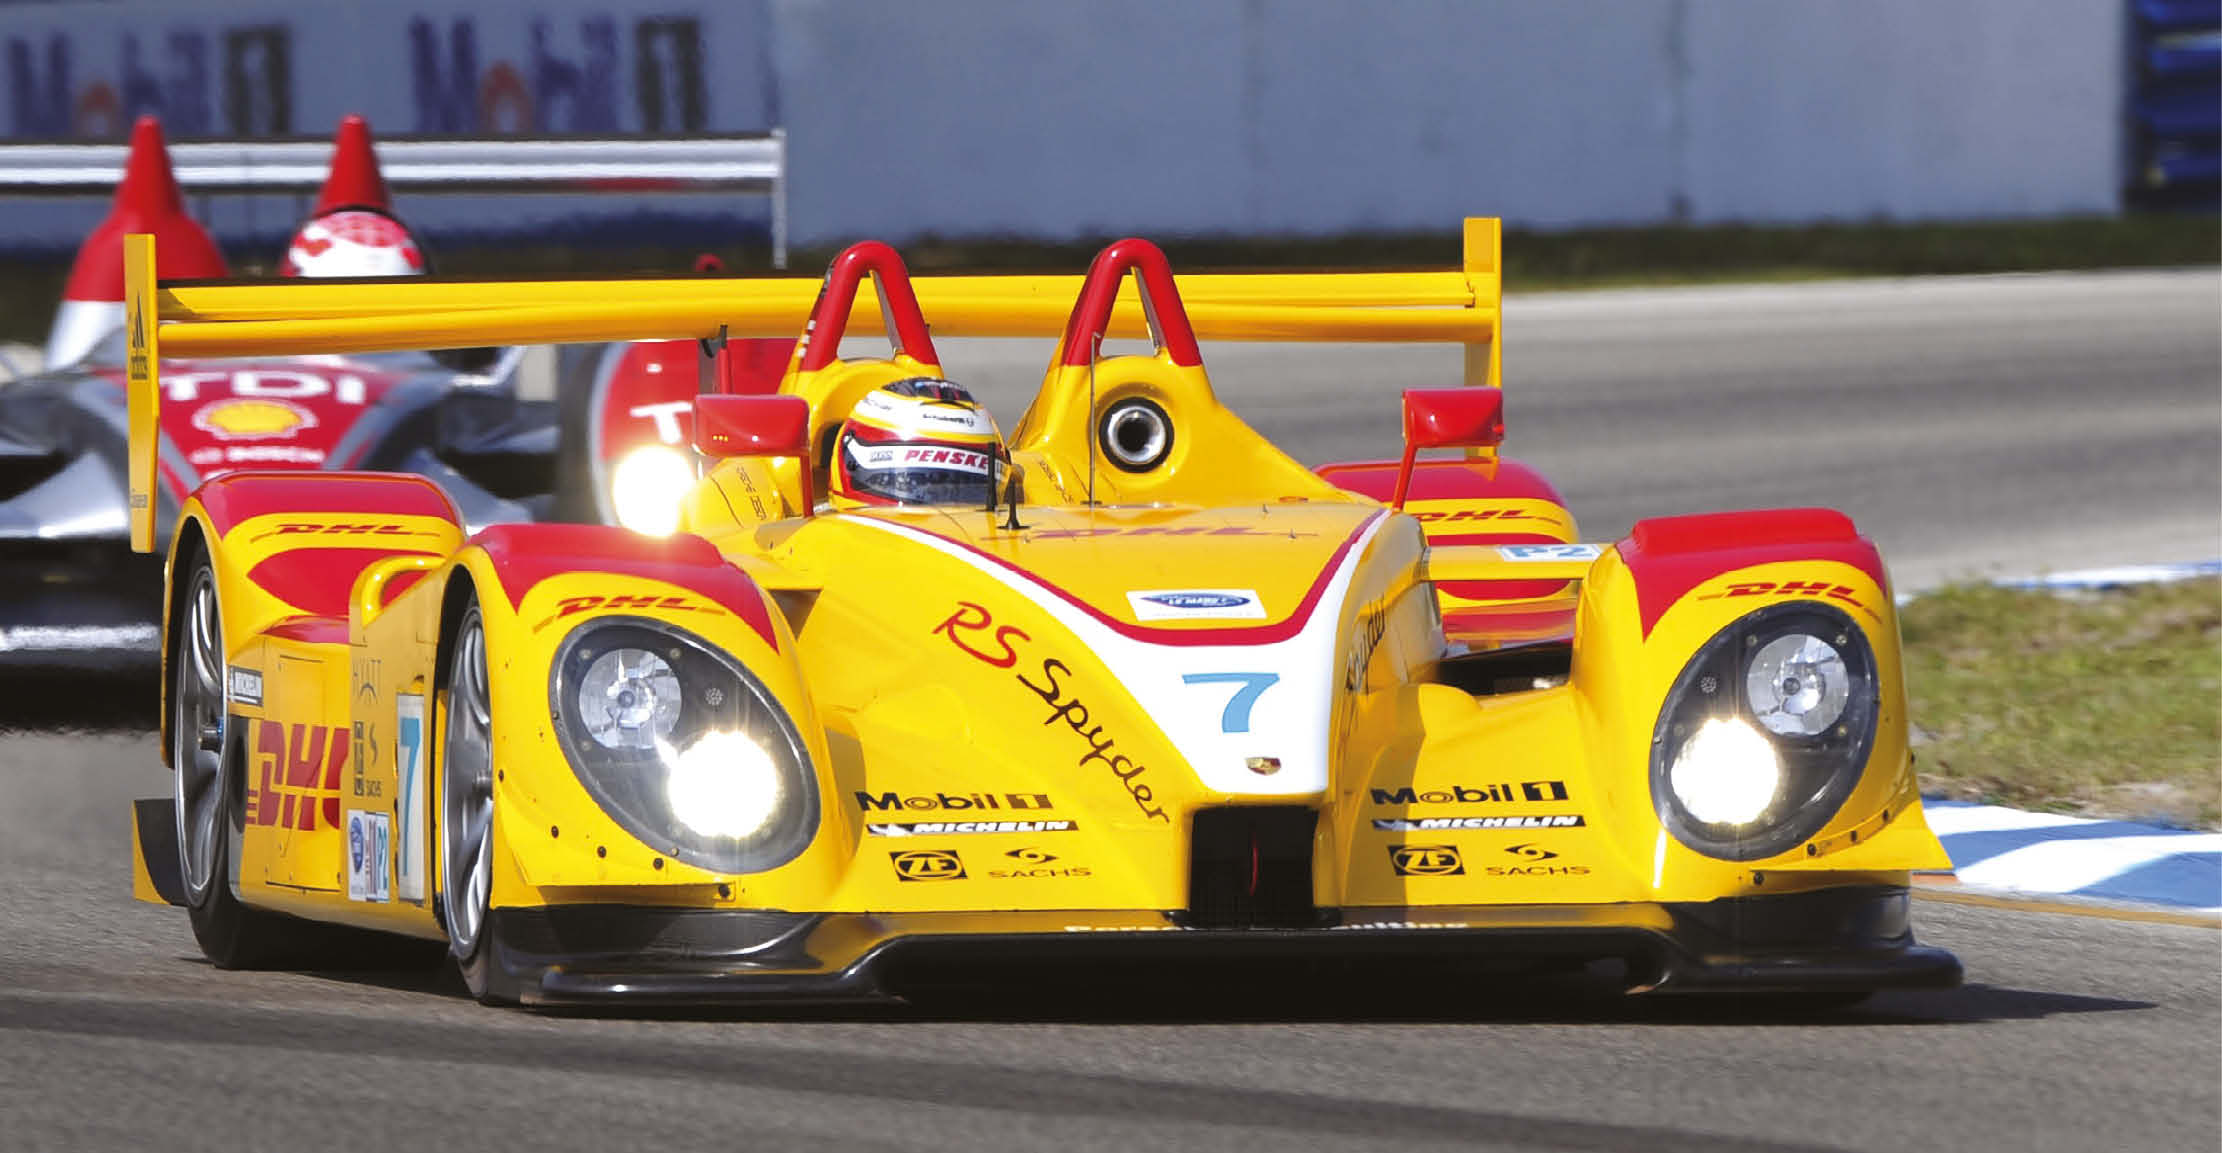 Team Penske operated Porsche's LMP2 programme, and beat the LMP1 Audis at Sebring in 2008